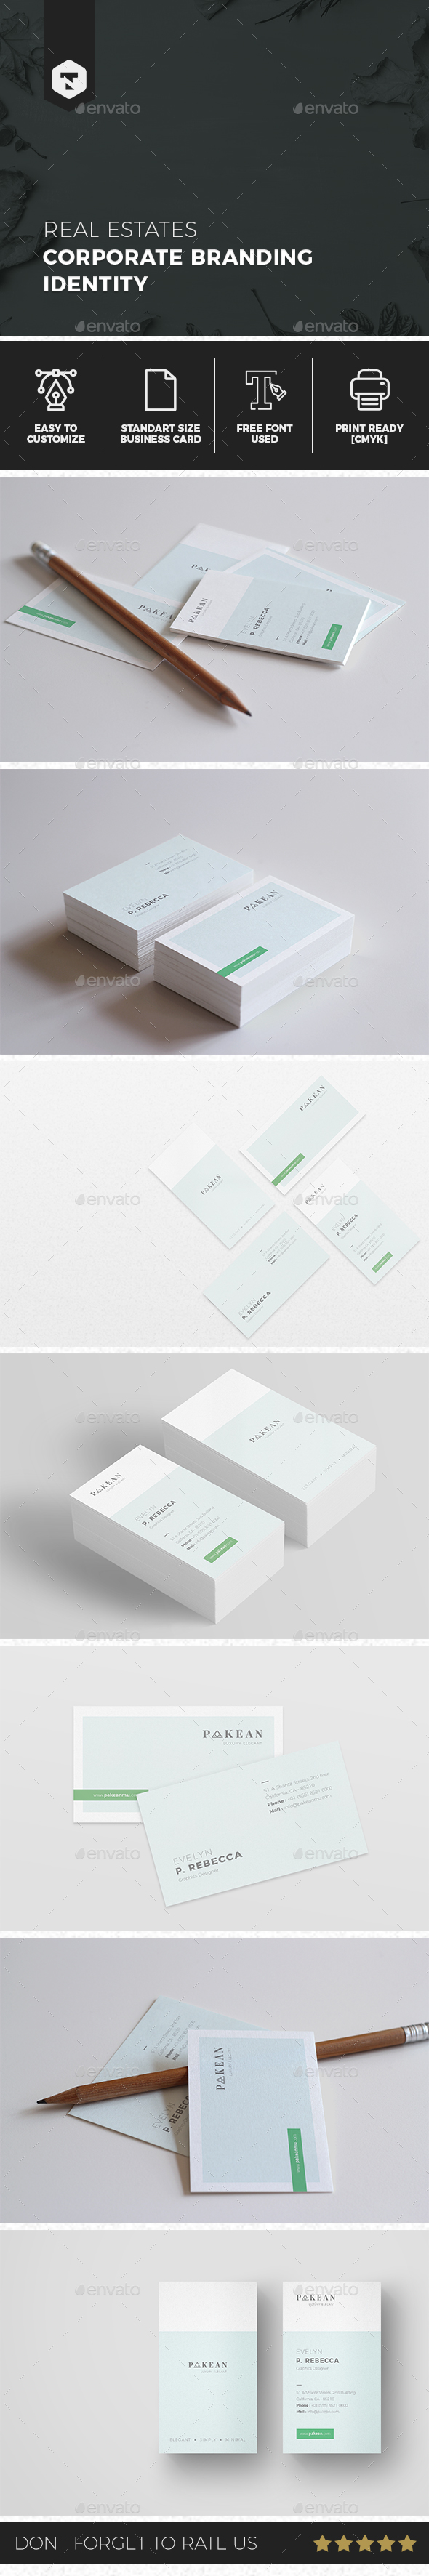 Minimalist Business Card Vol. 02 - Business Cards Print Templates